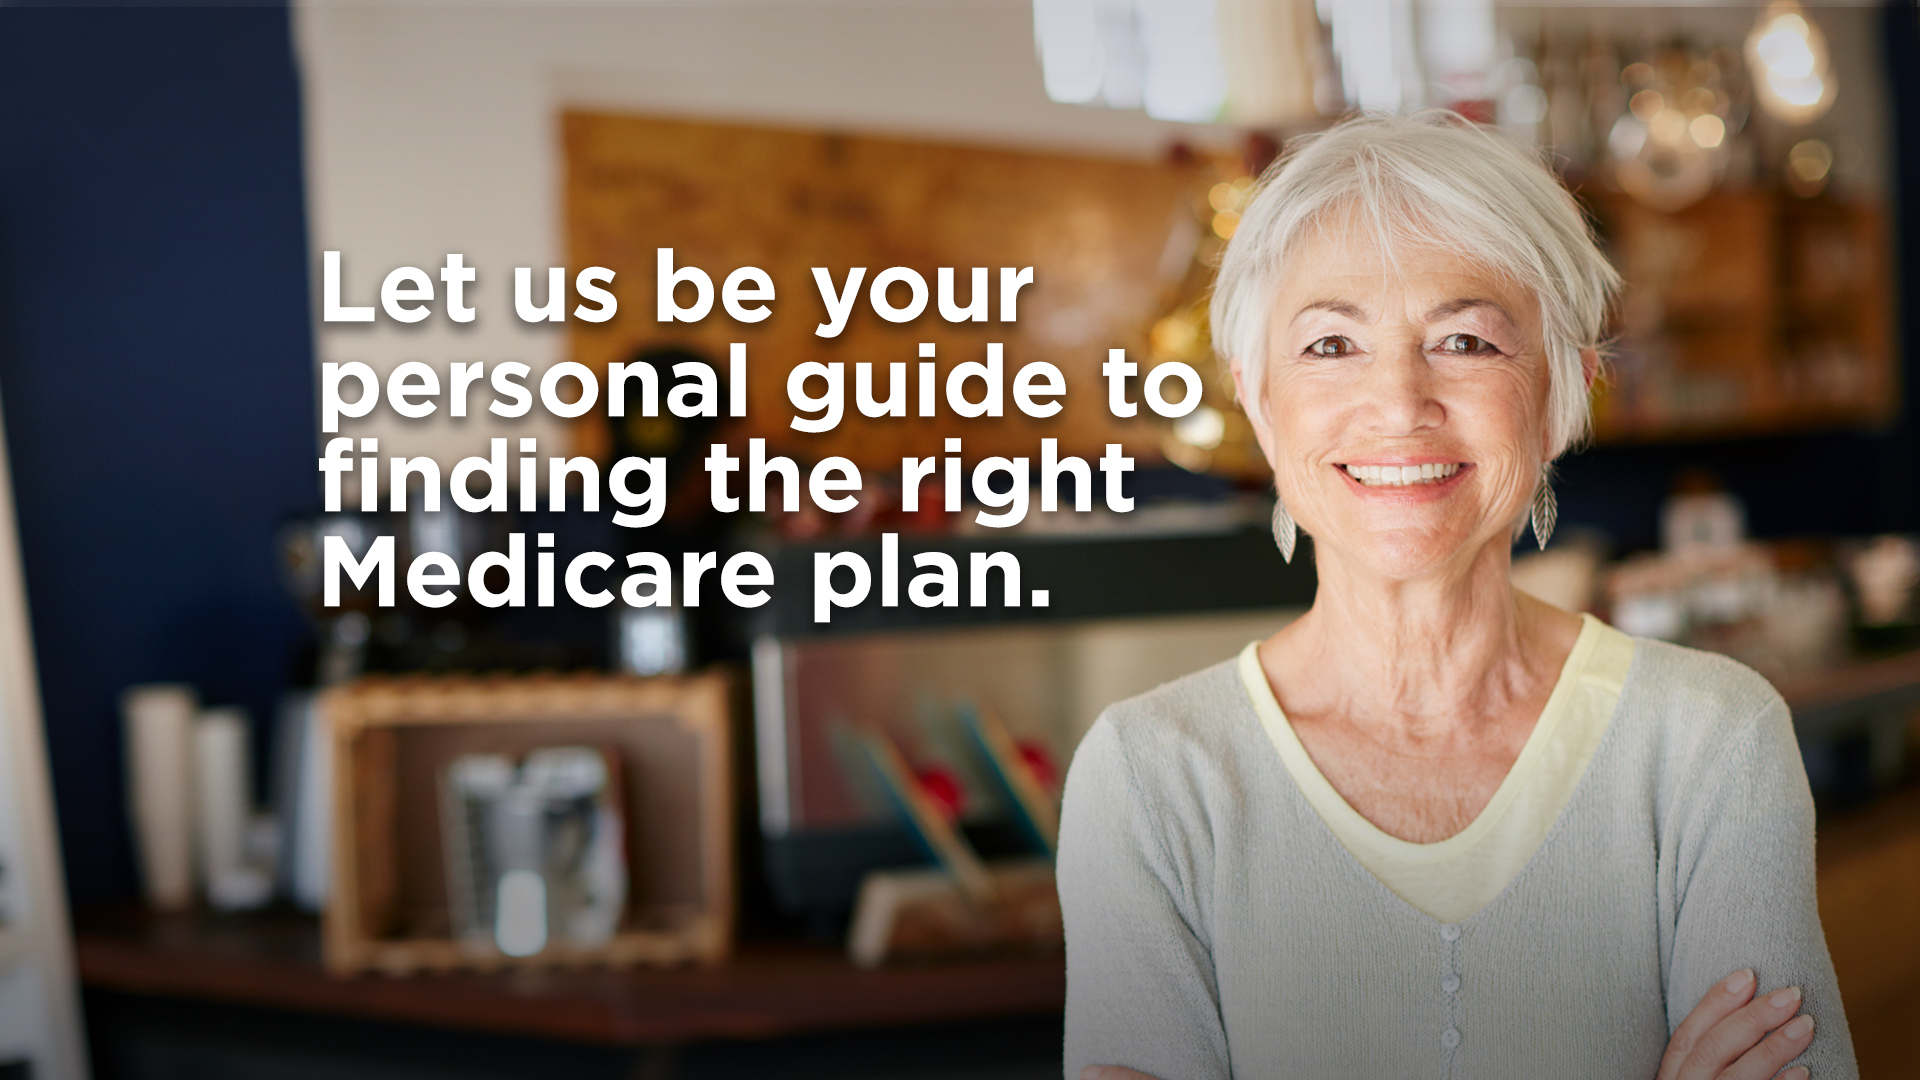 Let us be your personal guide to finding the right Medicare plan.